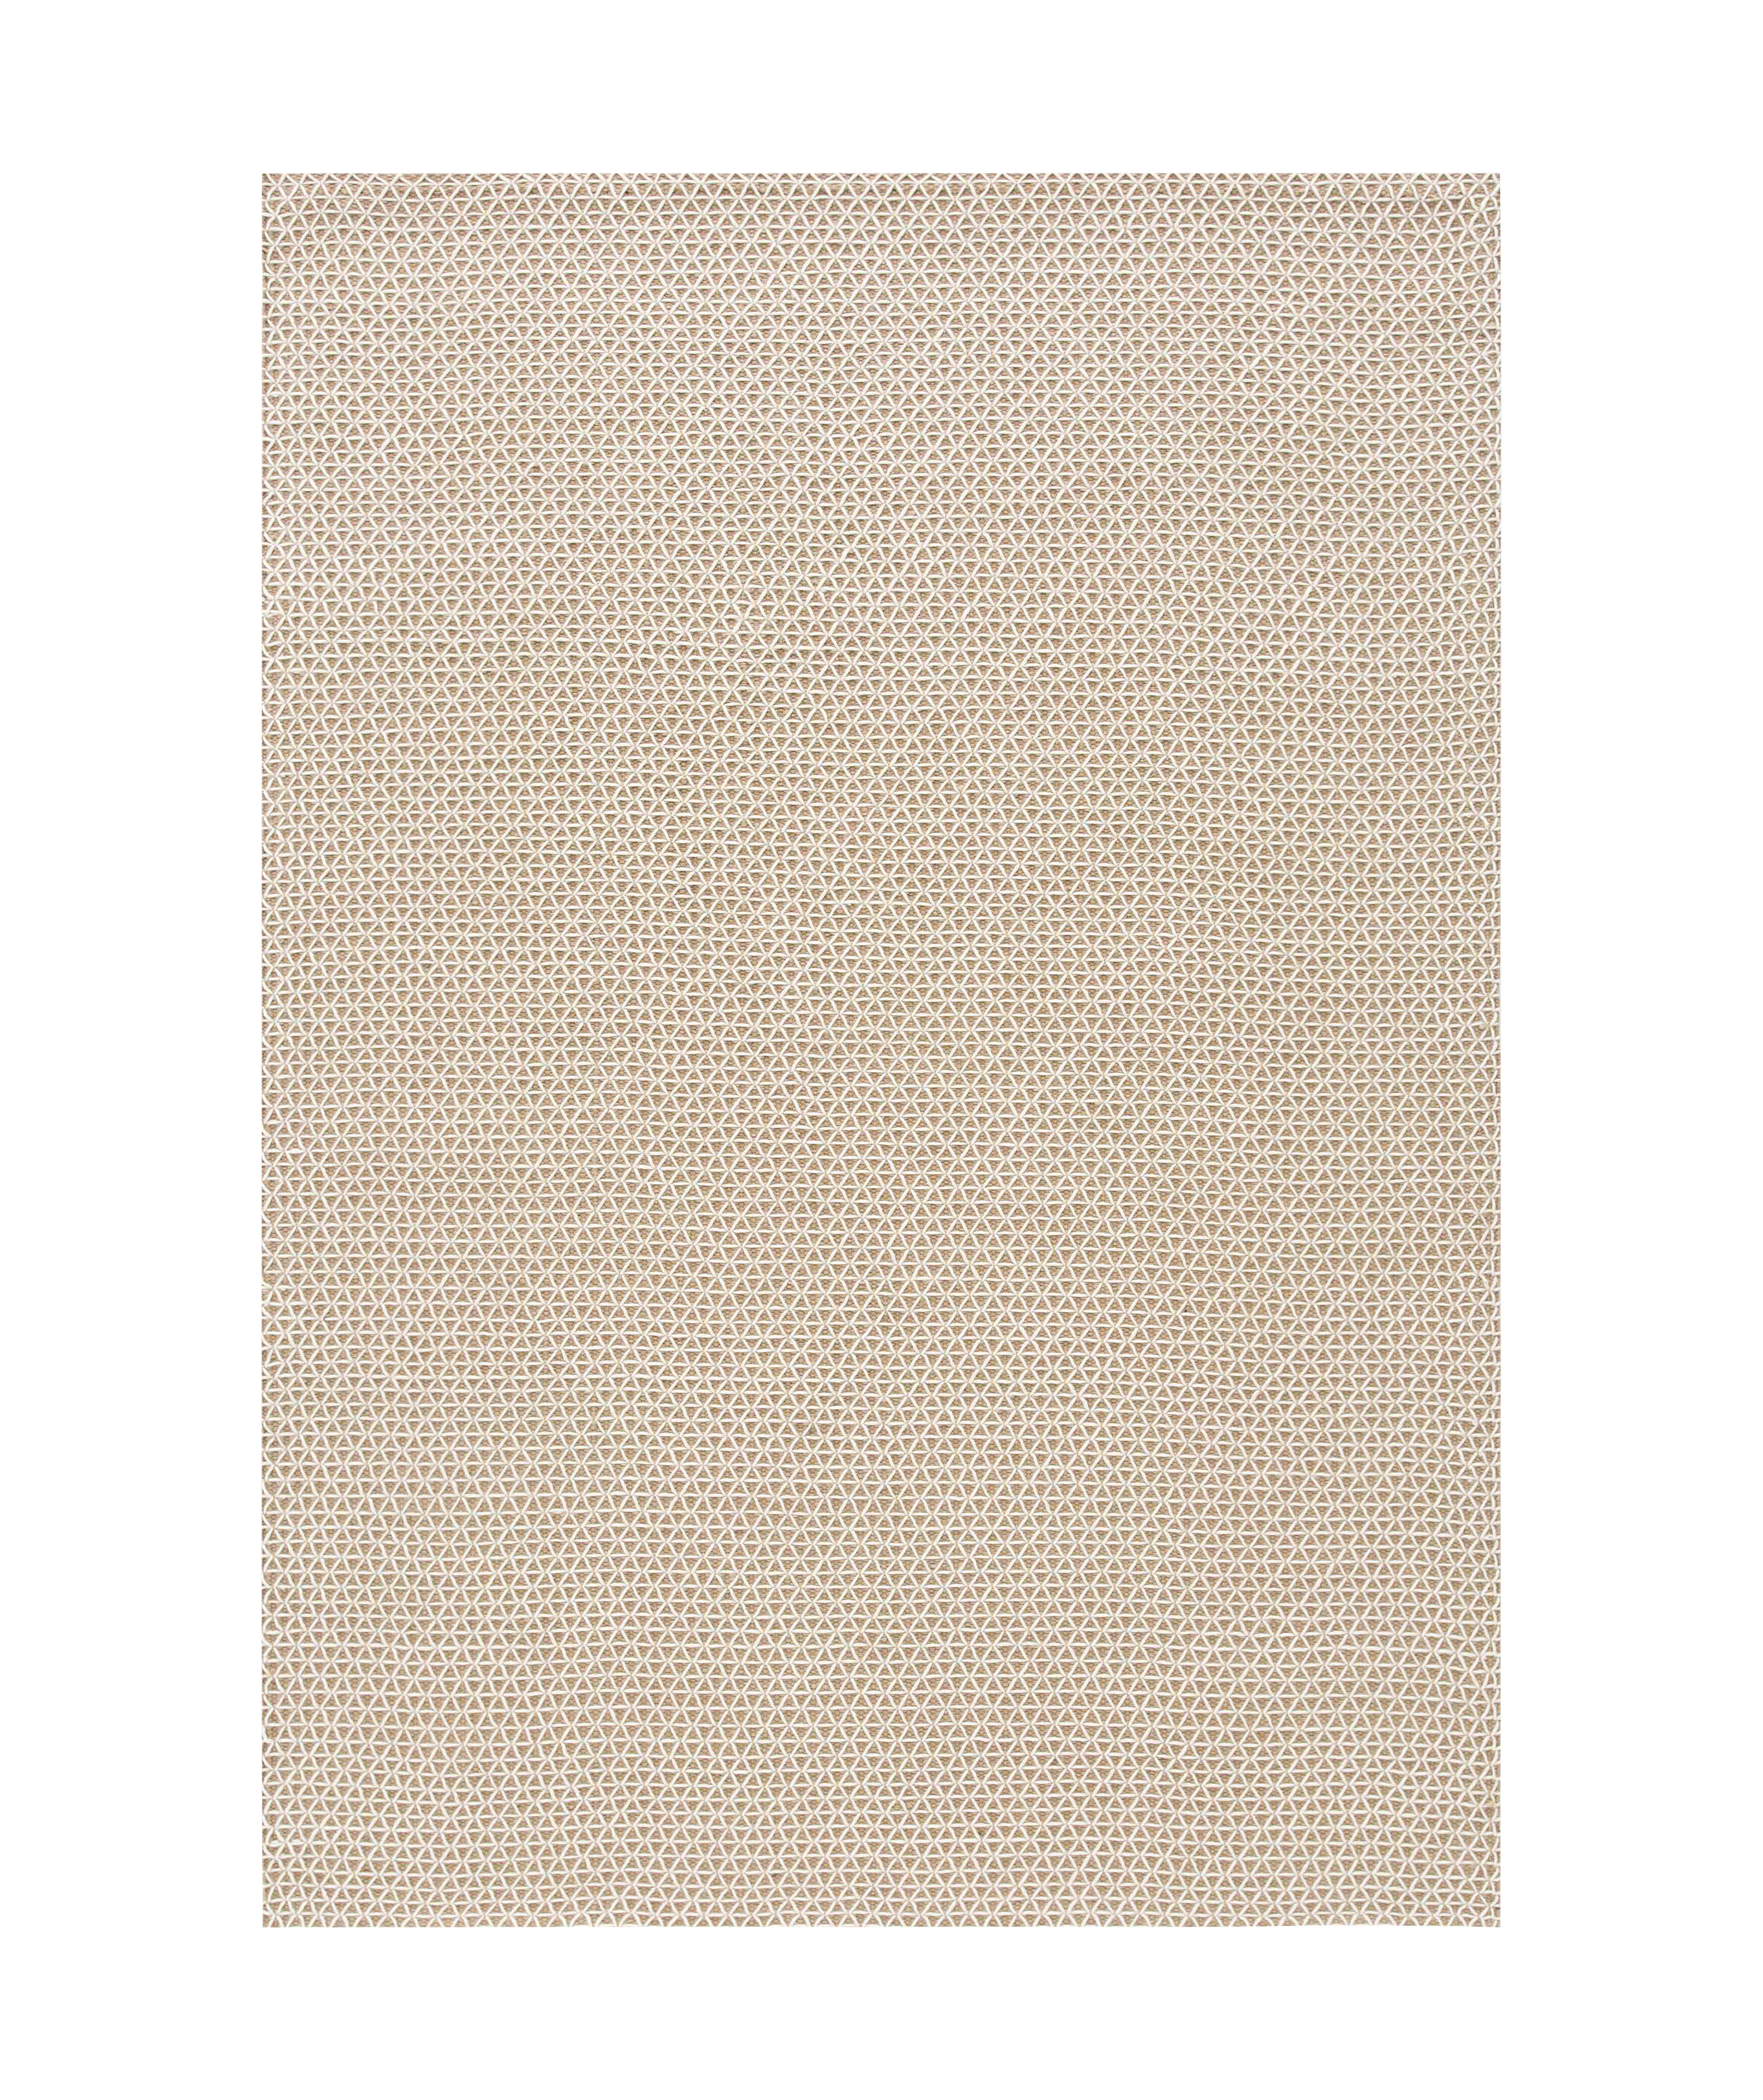 Decoration - Rugs - Raw Rug - 170 x 240 cm by Gan - White - Natural jute, Wool